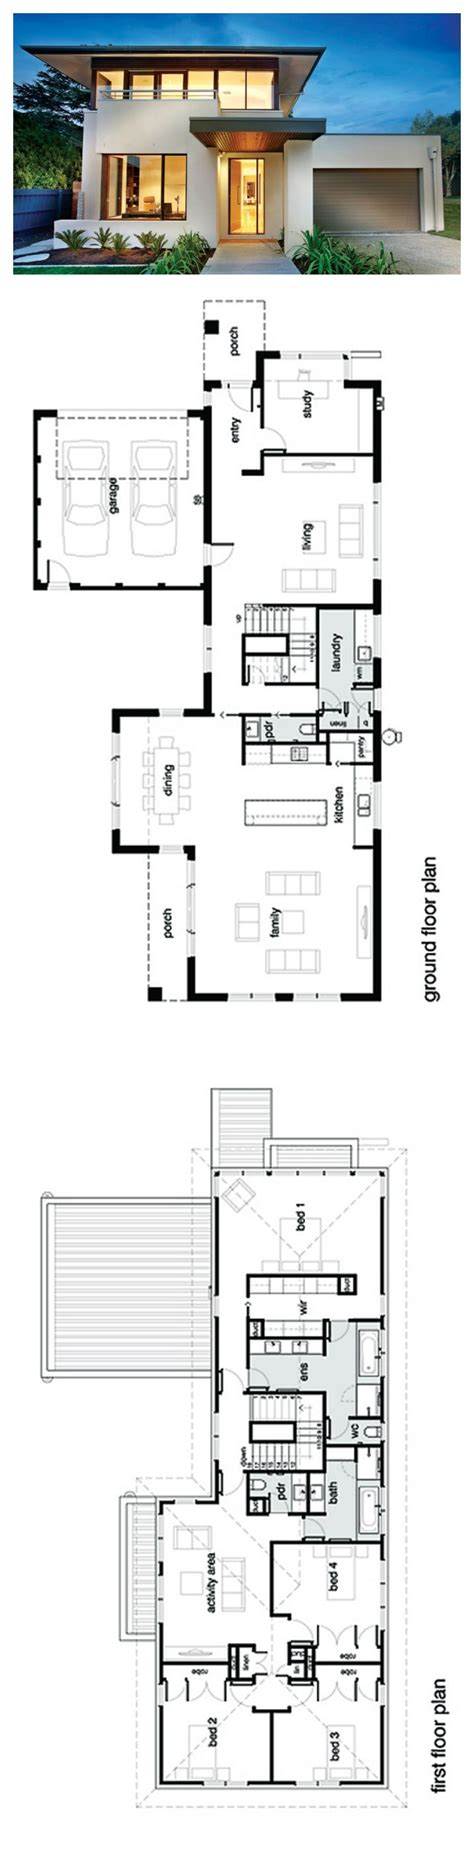 modern home floor plans the 25 best ideas about modern house plans on modern house floor plans modern